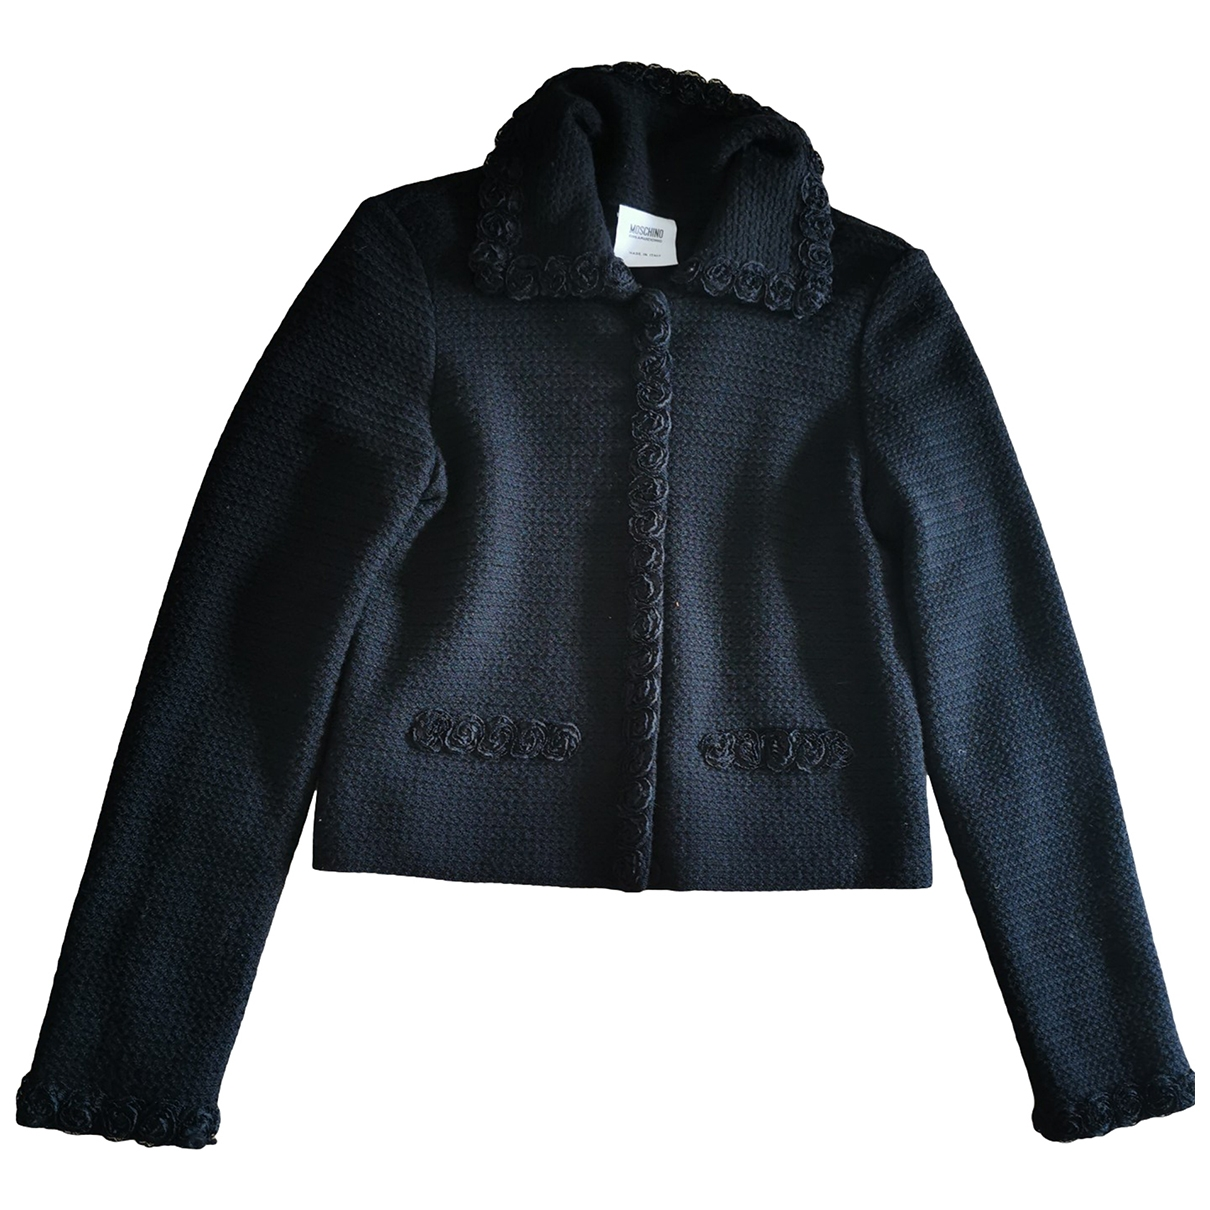 Moschino Cheap And Chic \N Black Wool jacket for Women 46 IT